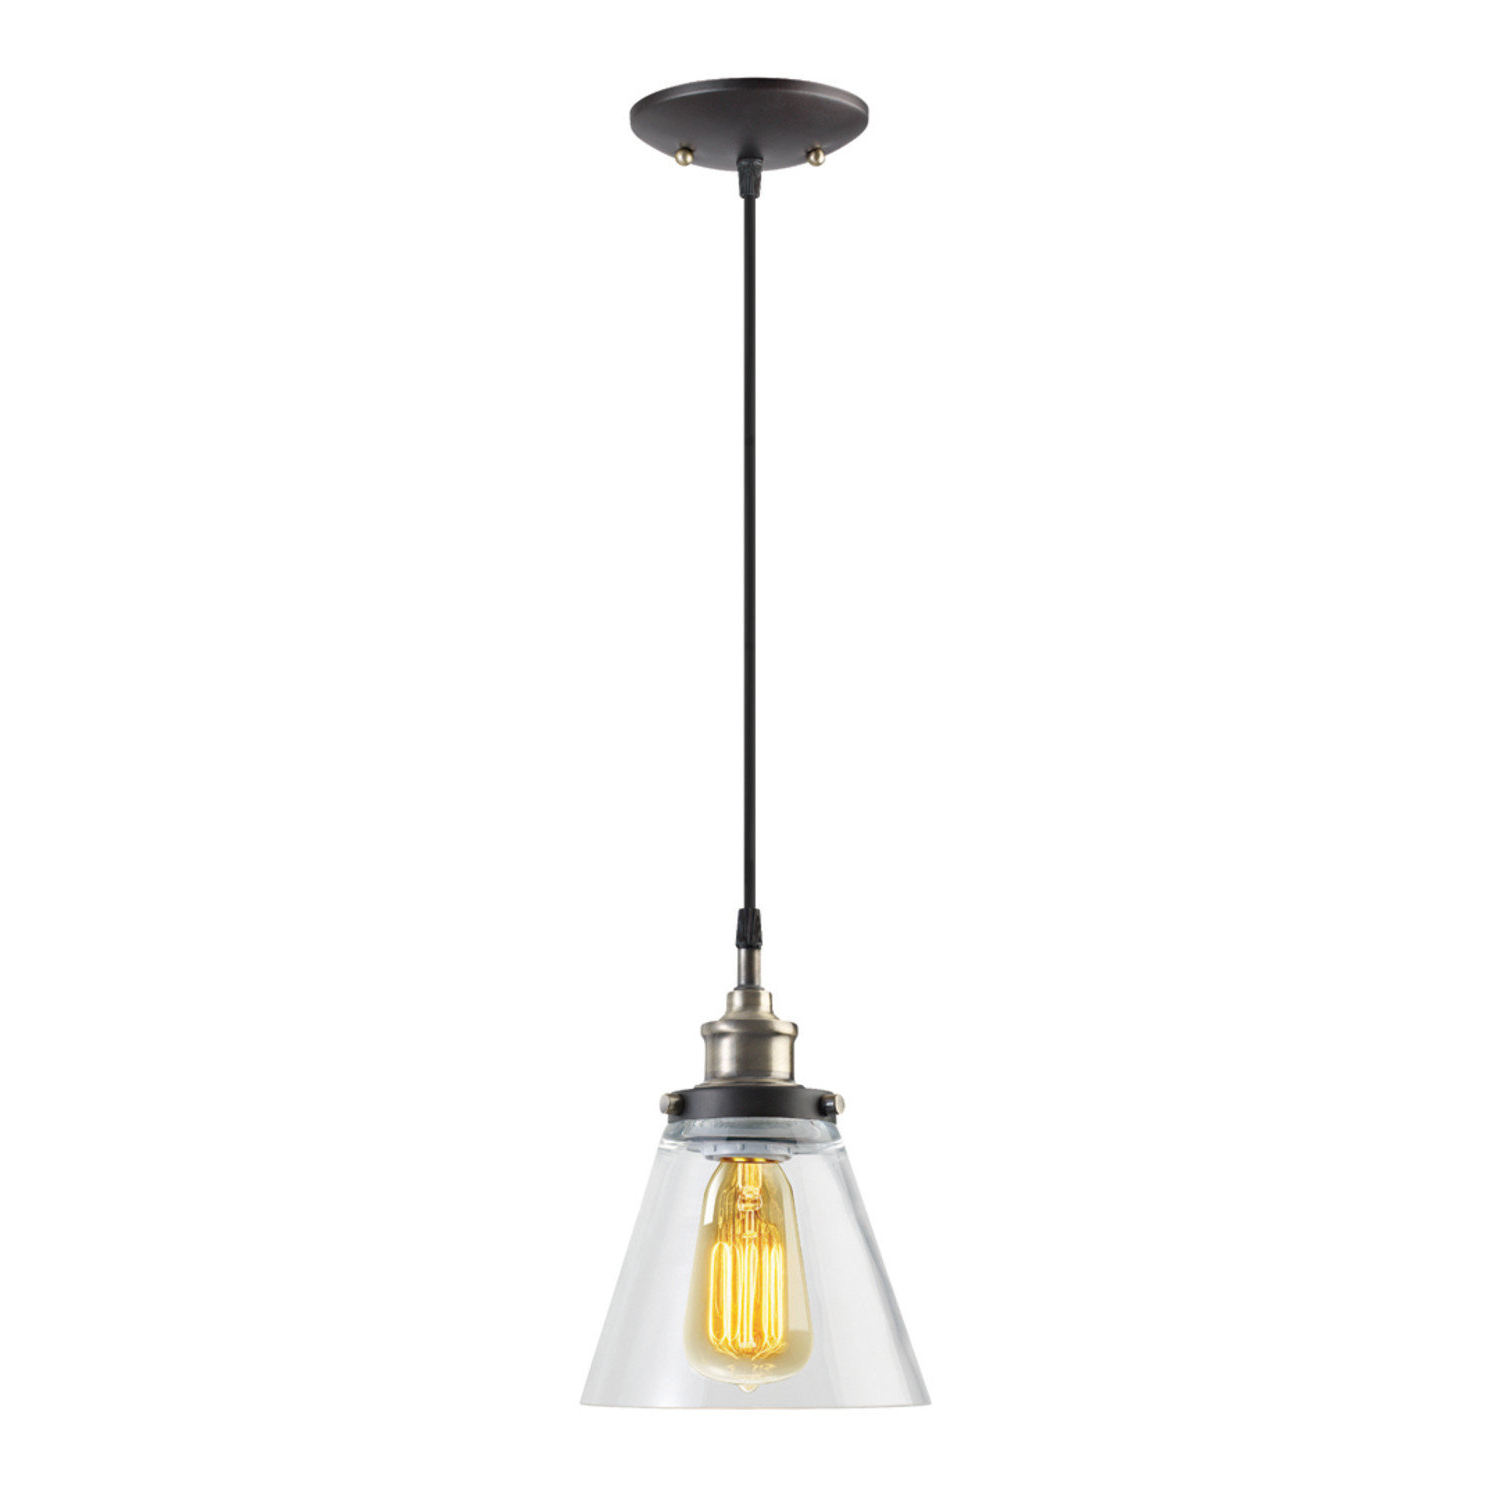 Newest Abelia 1 Light Single Cone Pendant Pertaining To Oldbury 1 Light Single Cylinder Pendants (View 16 of 25)